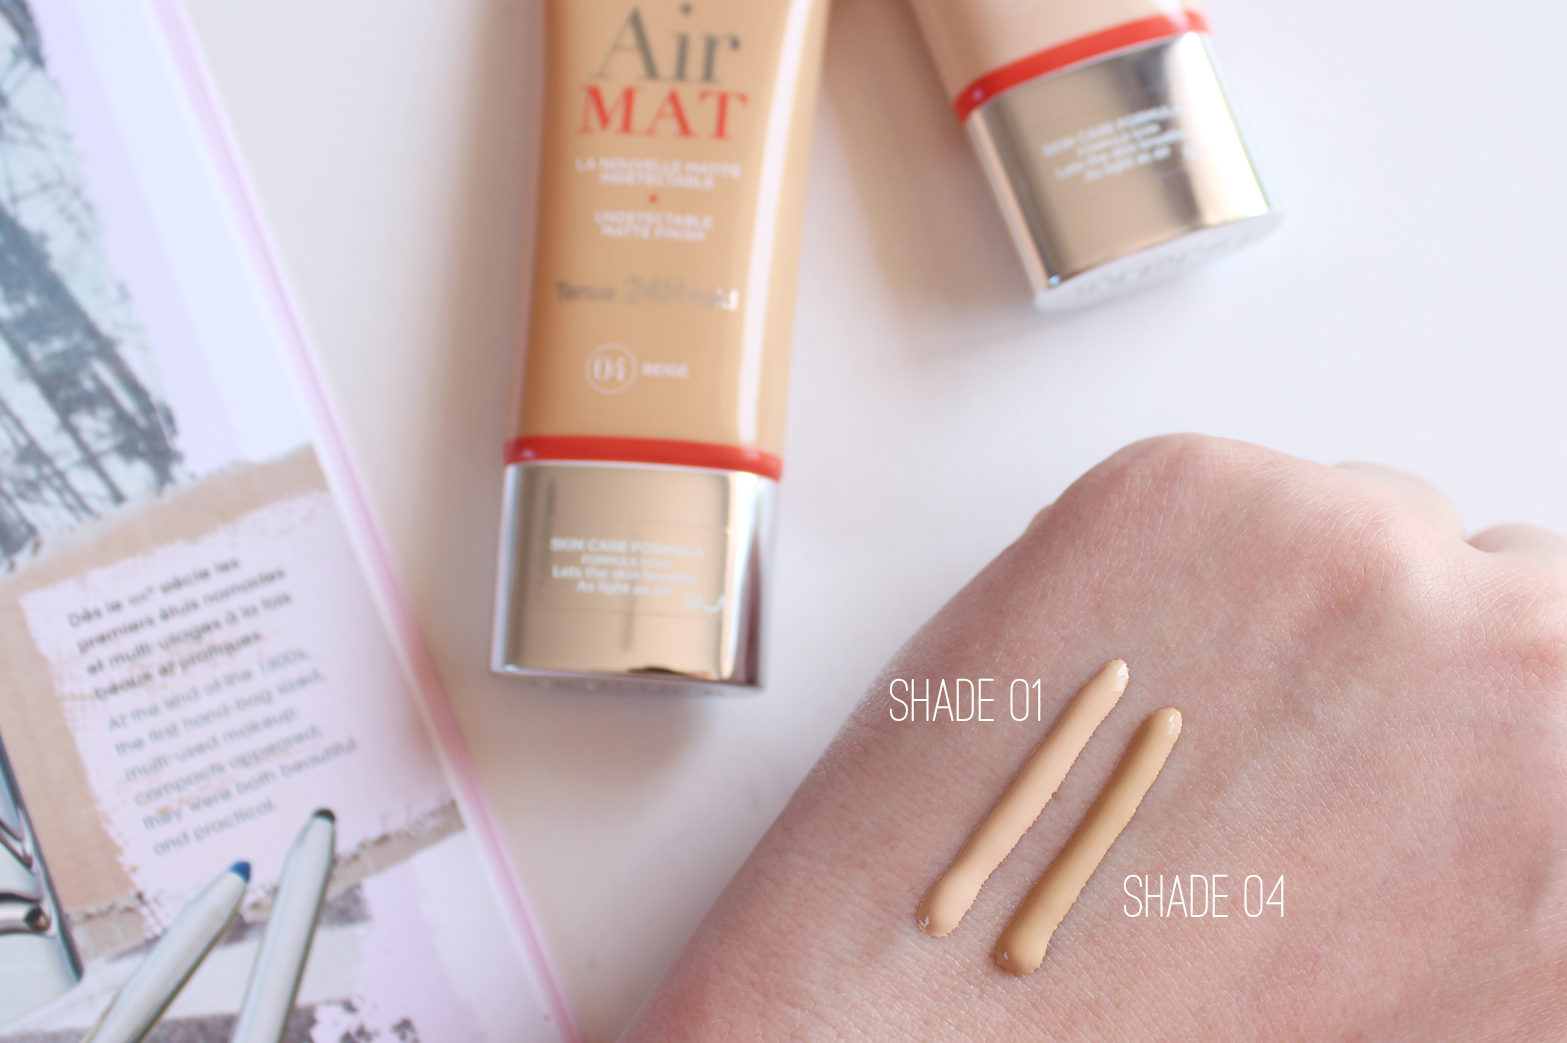 BOURJOIS PARIS | Upcoming Releases + First Impressions - Air Mat Foundation Shade 01 + 04 - CassandraMyee